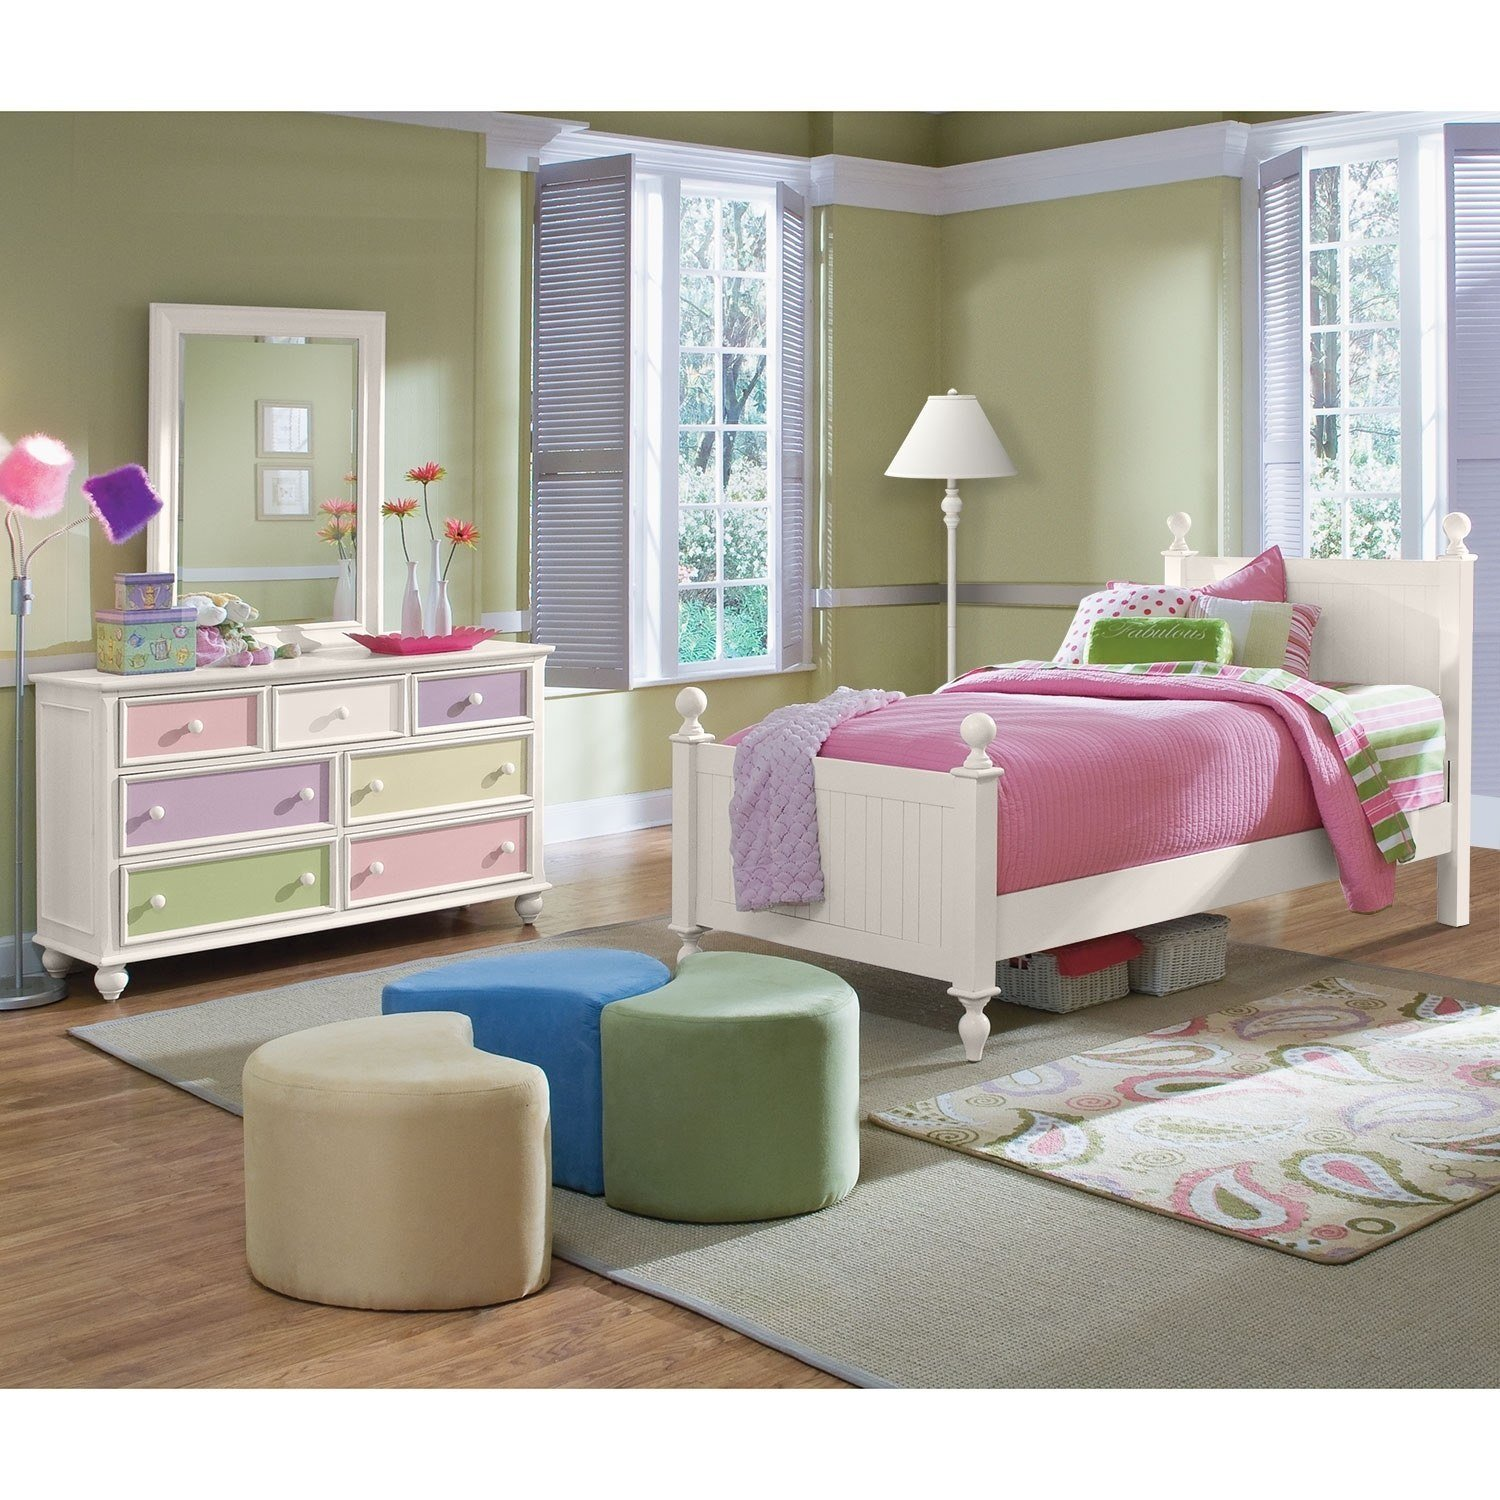 Best Colorworks 5 Piece Twin Bedroom Set White Value City With Pictures